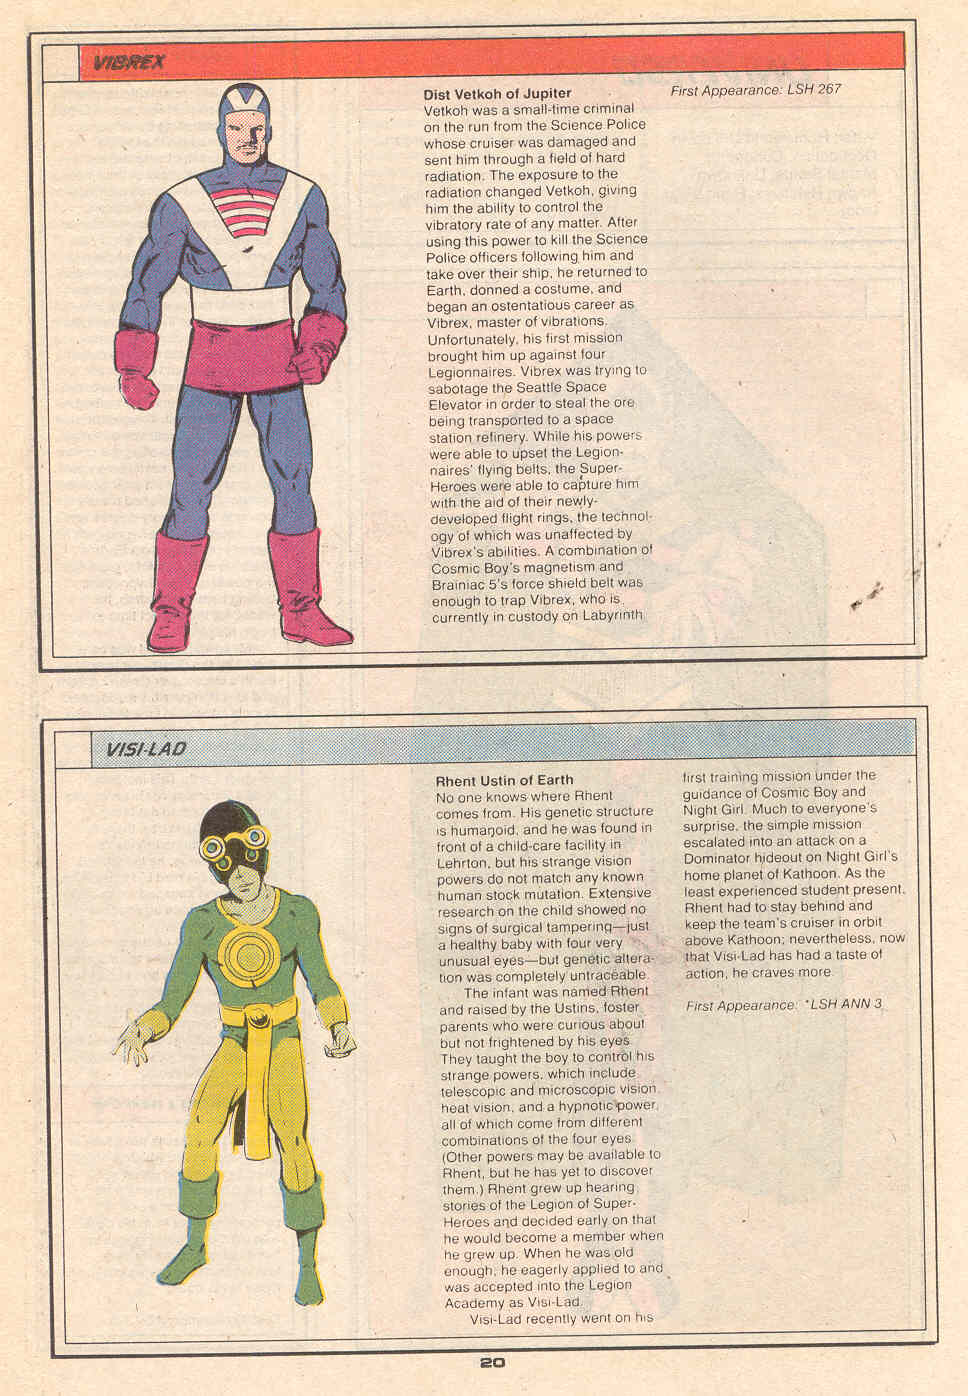 Vibrex by Keith Giffen, and Visi-Lad by Keith Giffen and Kez Wilson - Who's Who in the Legion of Super-Heroes #7